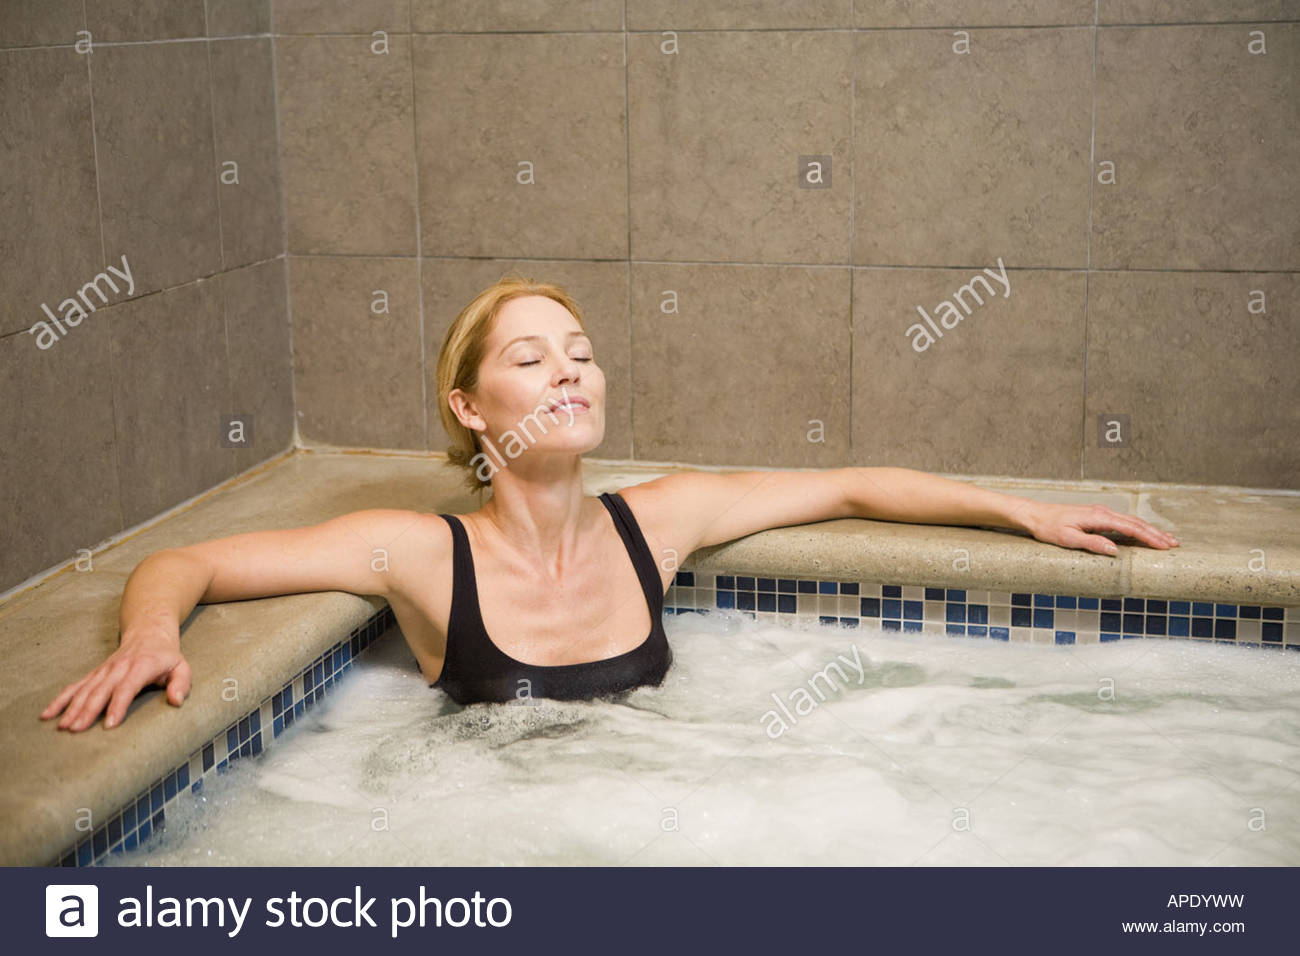 woman sitting in hot tub stock photo royalty free image 15761508 alamy. Black Bedroom Furniture Sets. Home Design Ideas